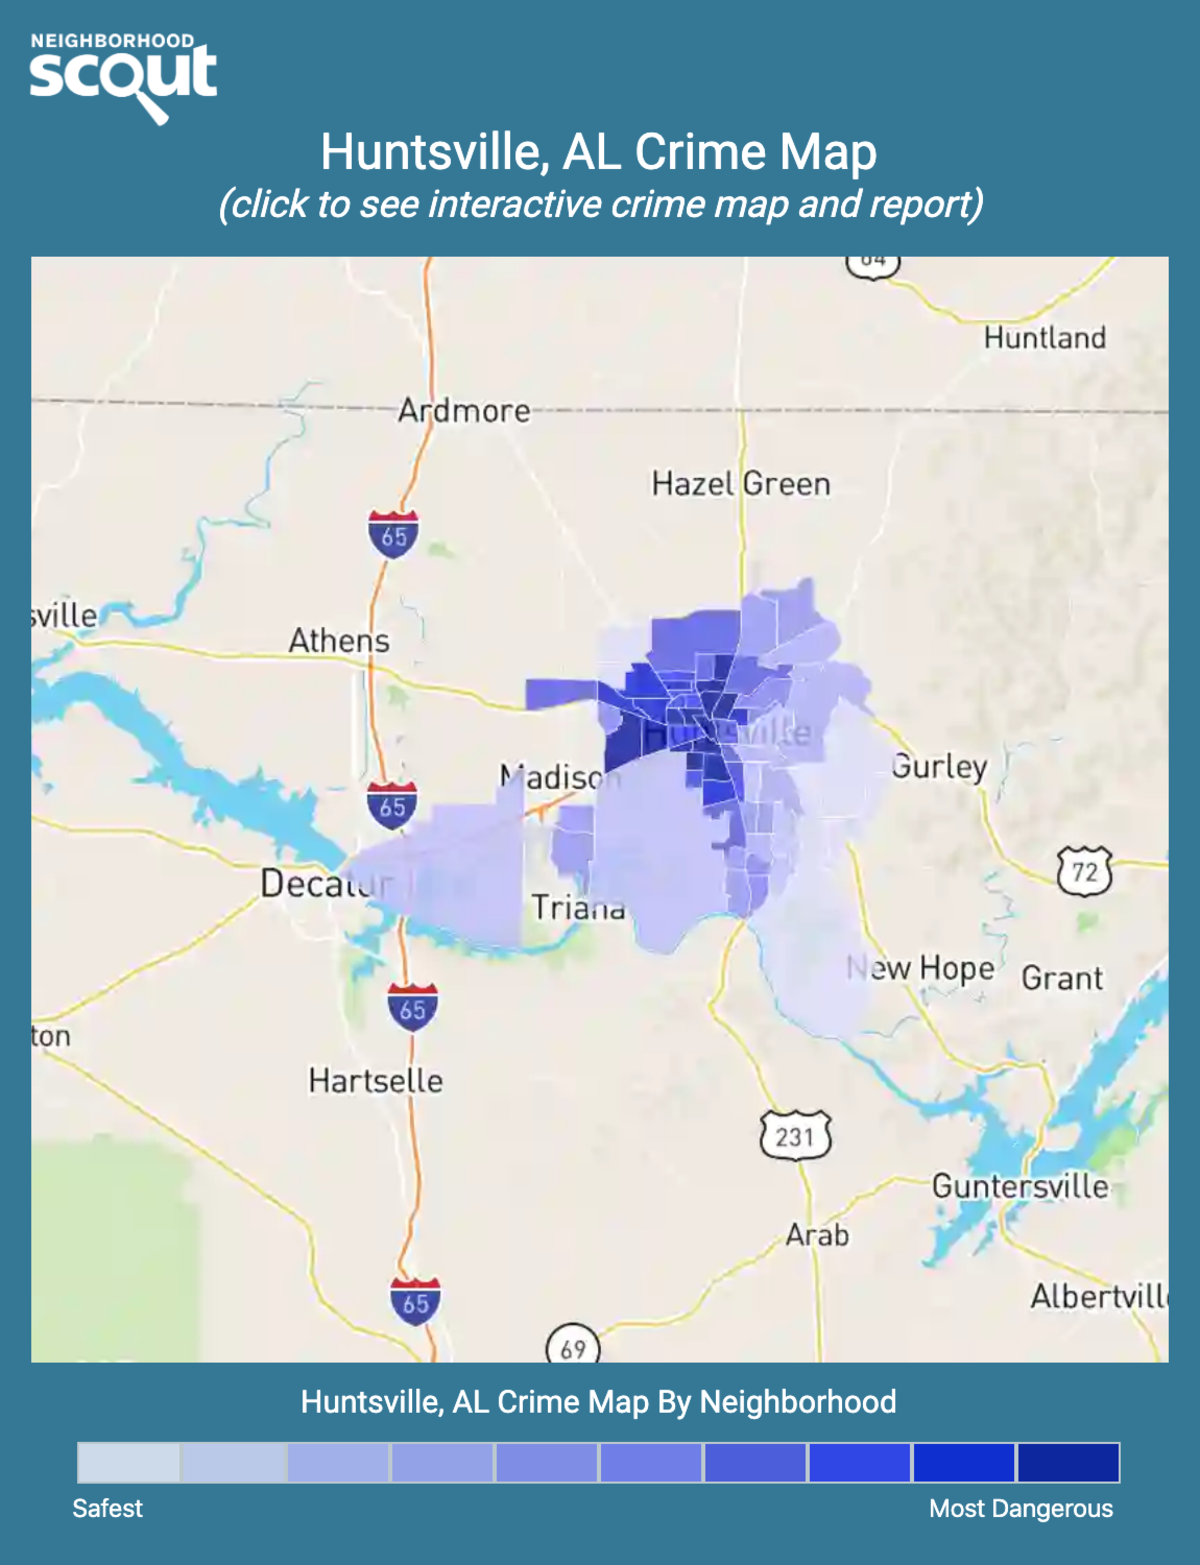 Huntsville, Alabama crime map